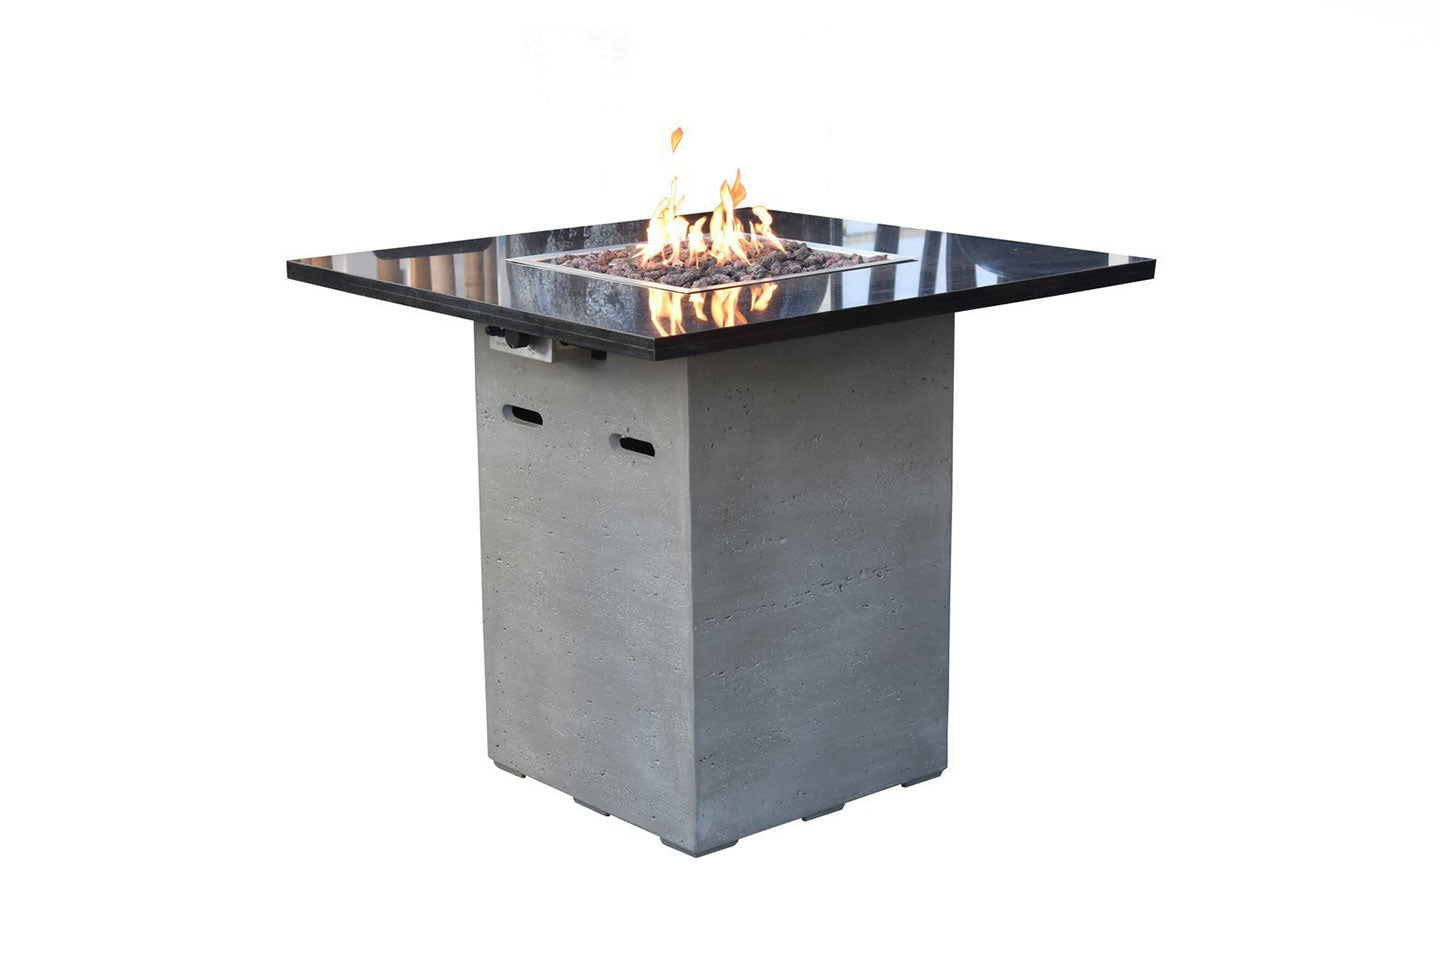 Elementi & Modeno Fire Pit Alps Bar Table